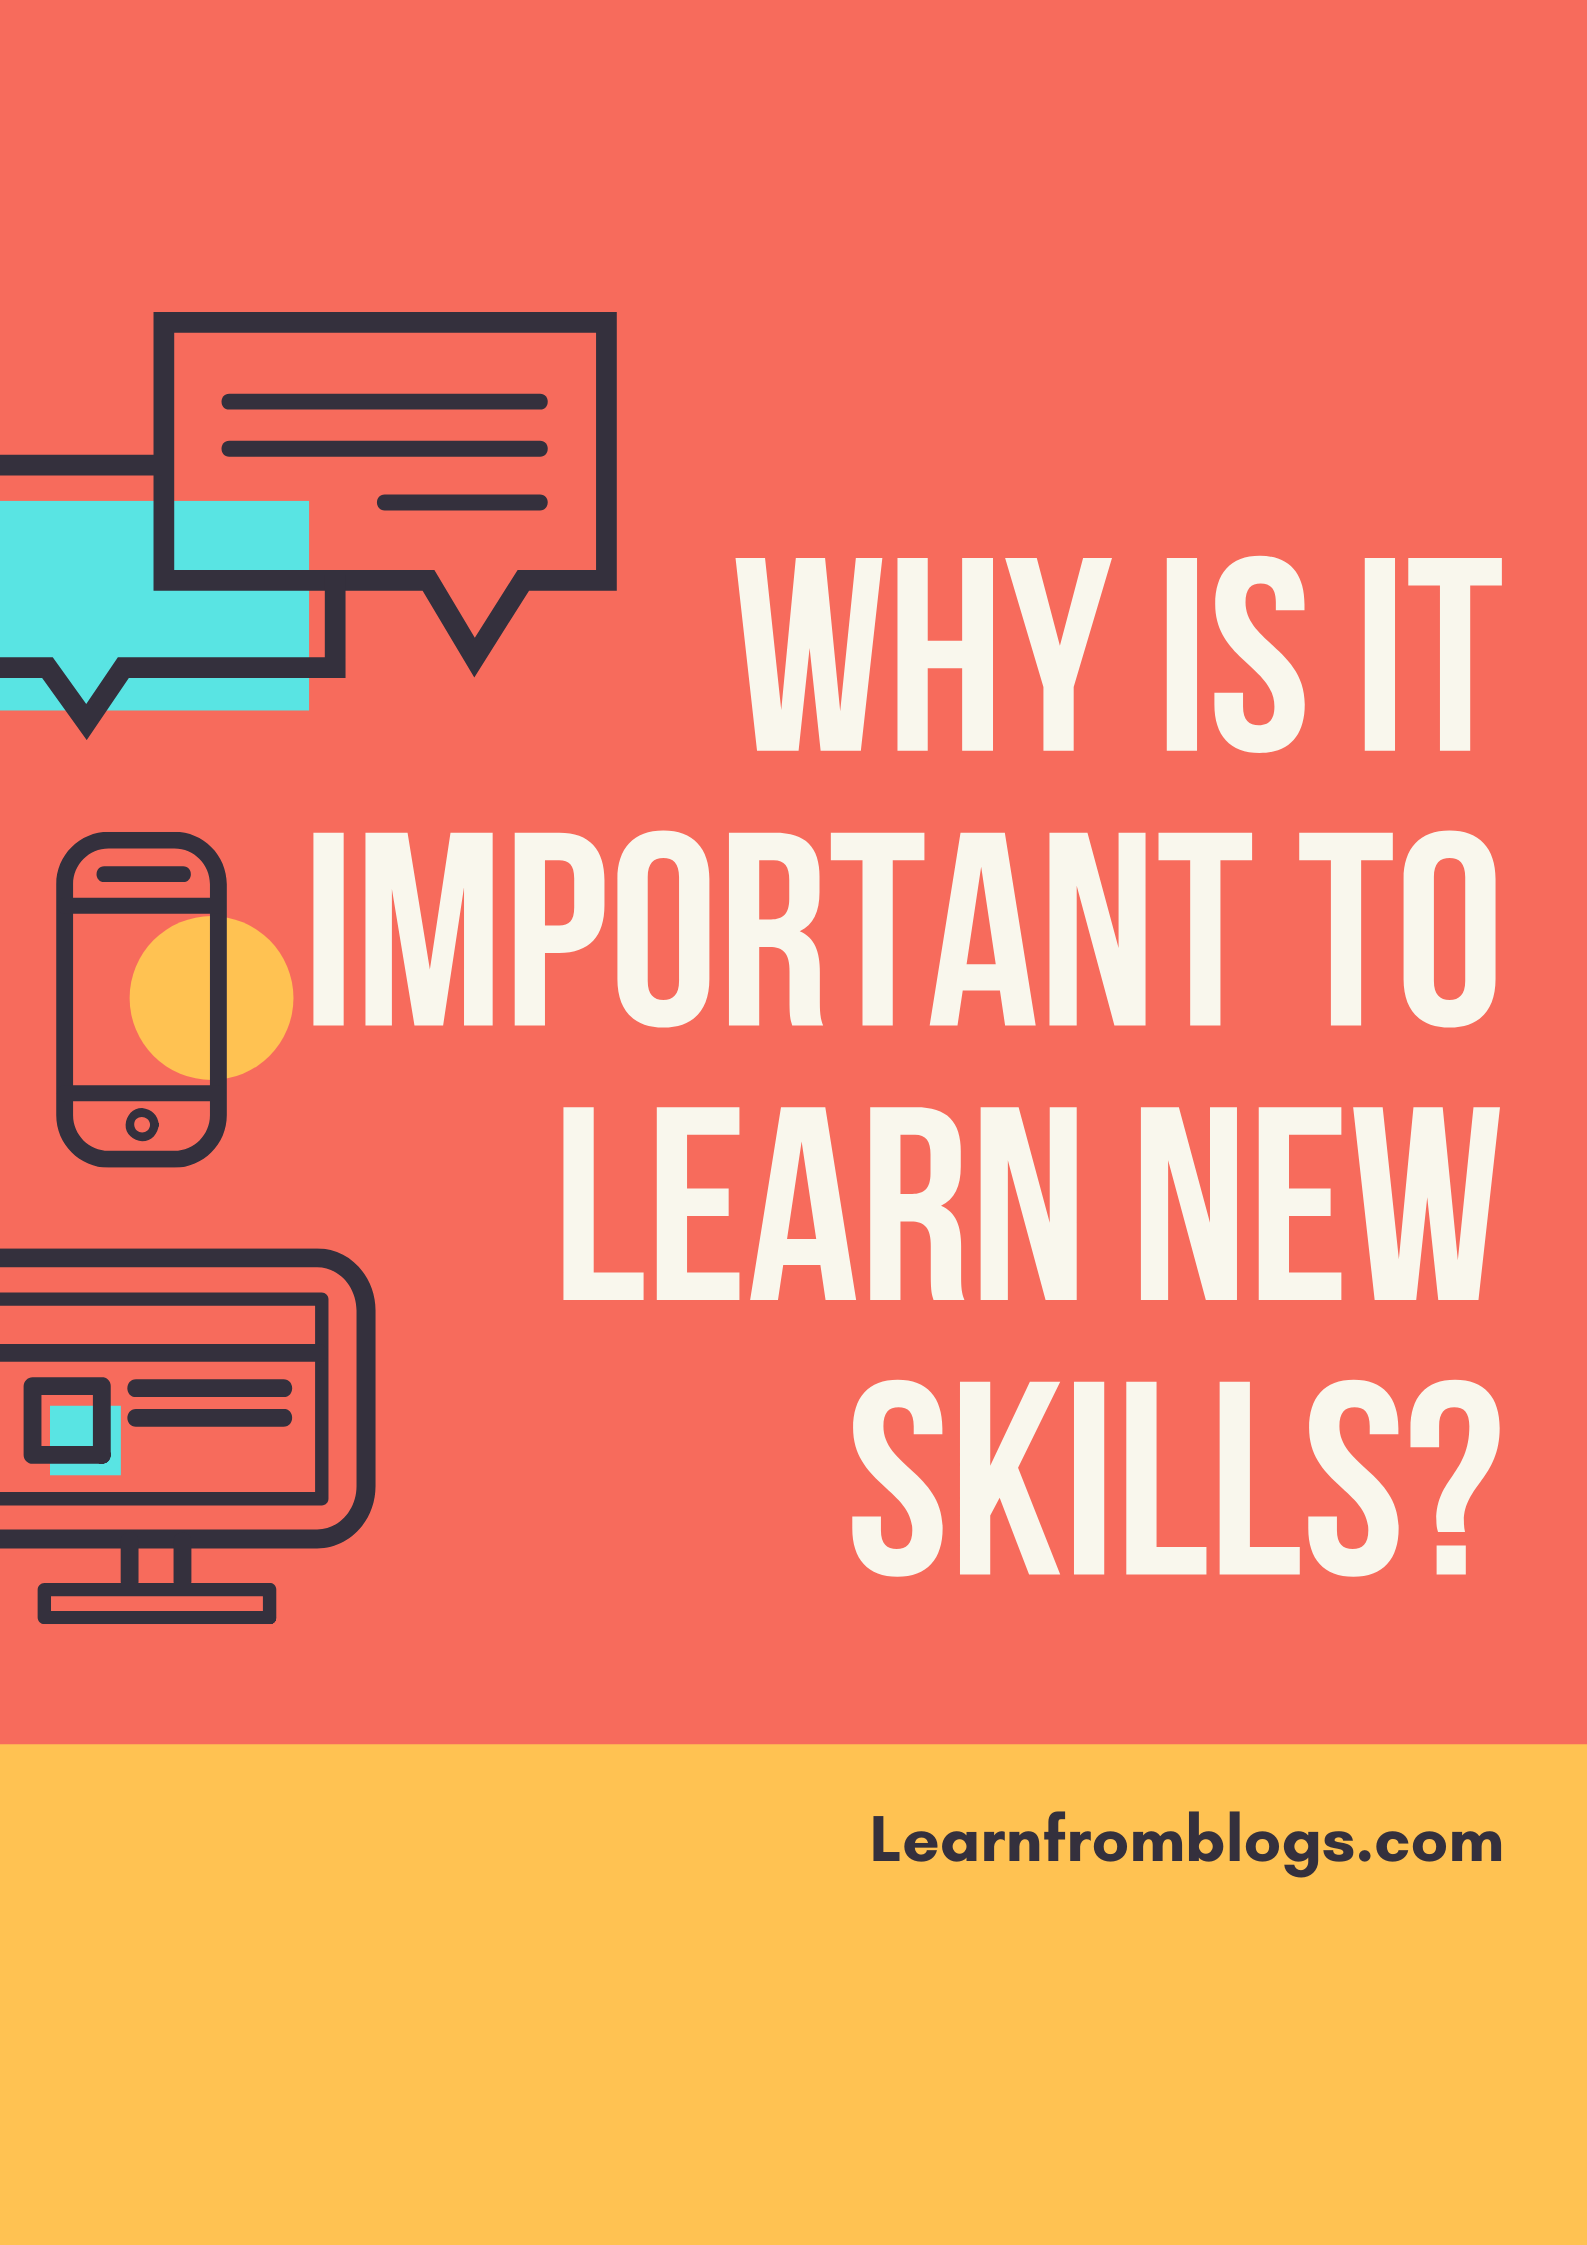 WHY IS IT IMPORTANT TO LEARN NEW SKILLS?.png